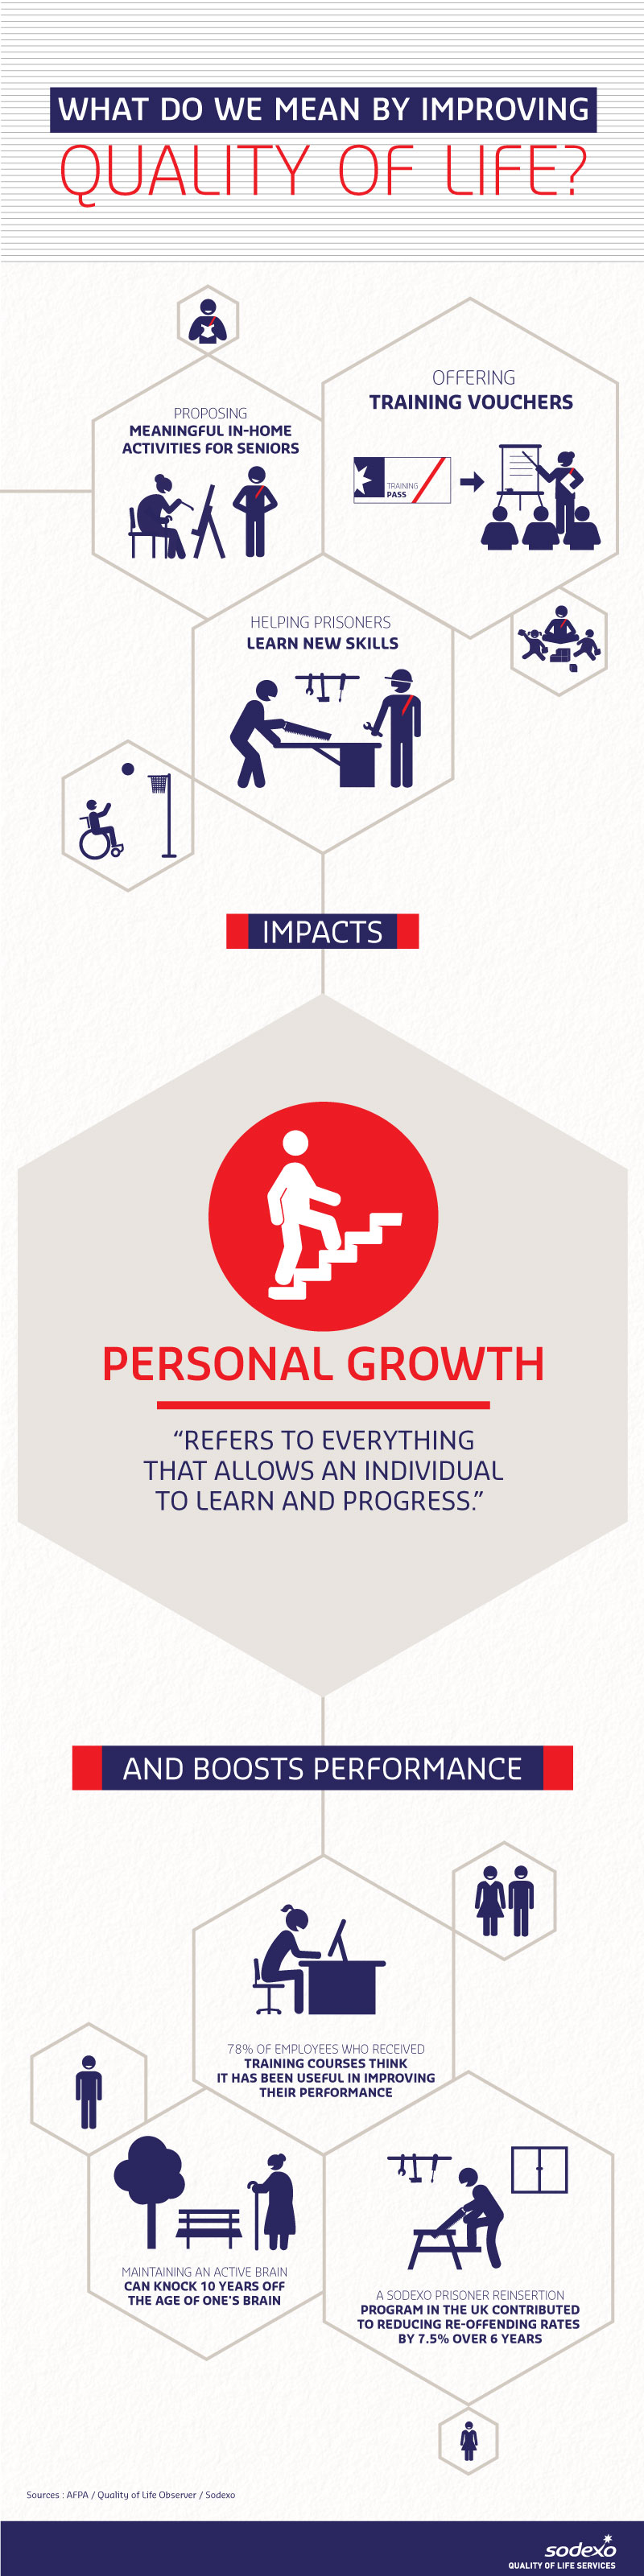 Quality of Life Dimension - Personal growth (infographic)